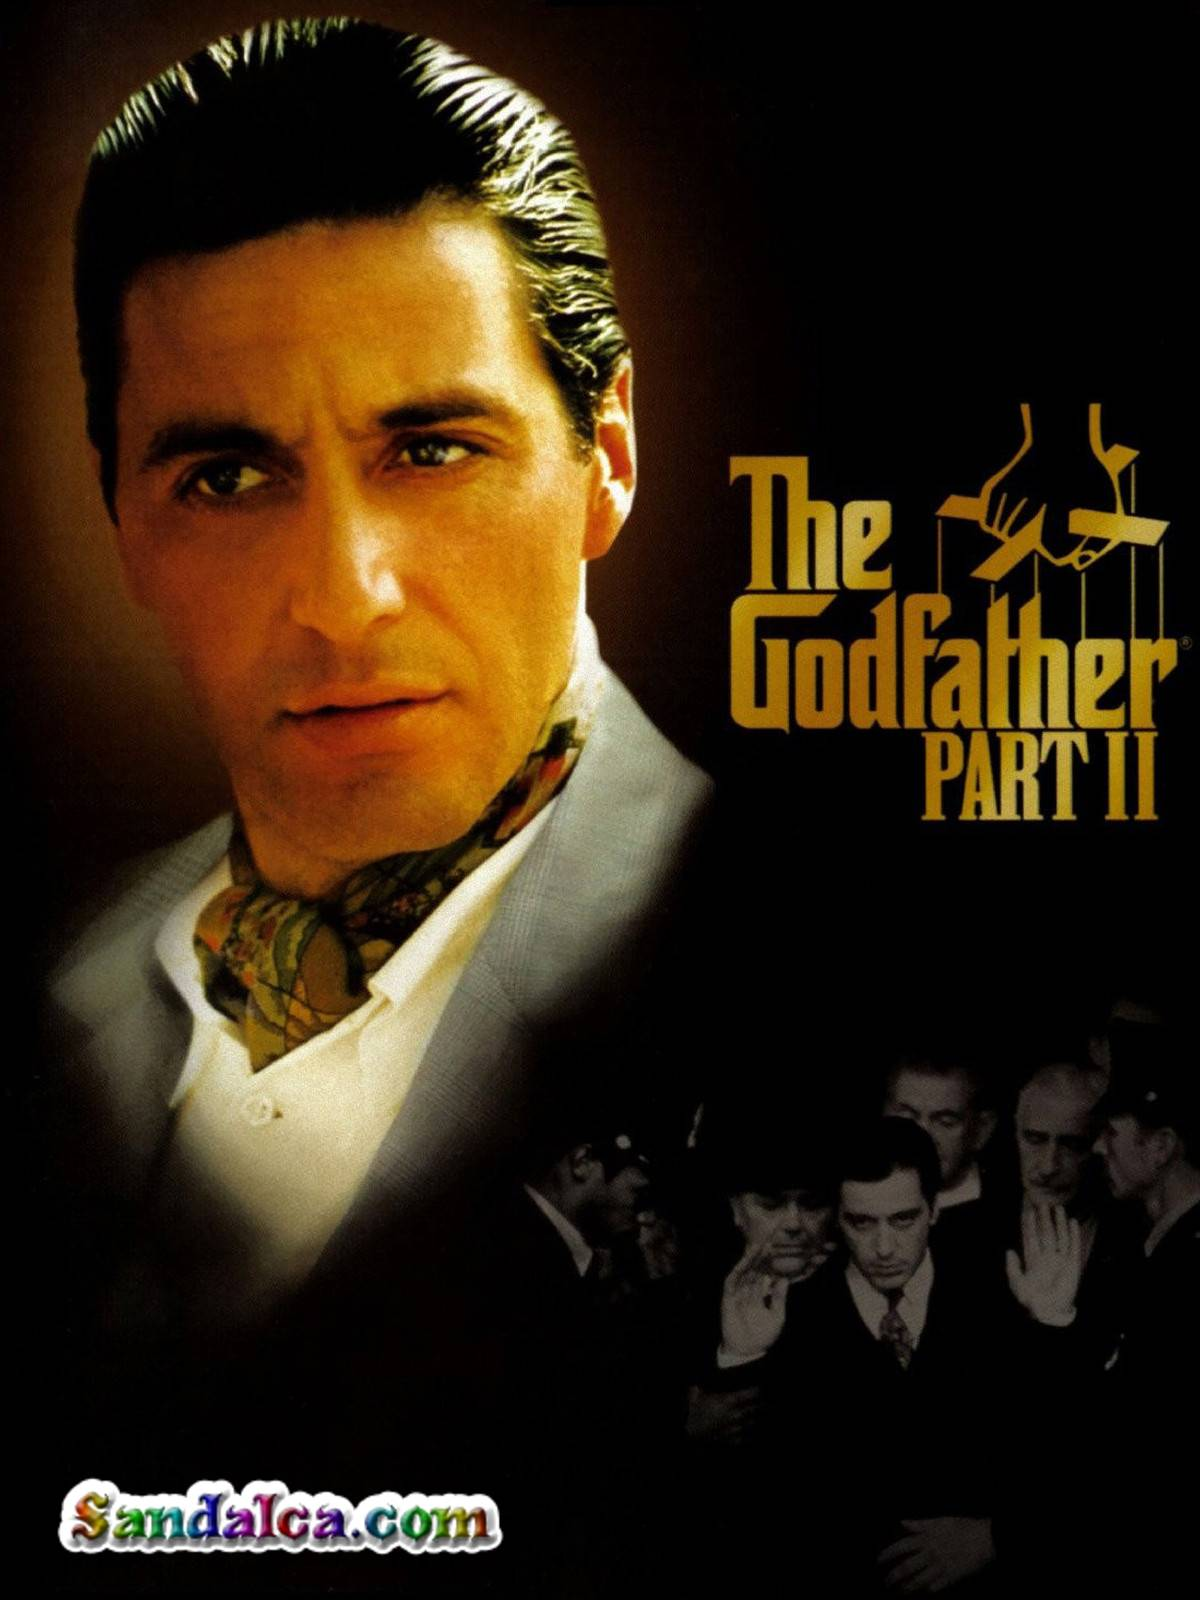 Baba 2 - The Godfather Part 2 Türkçe Dublaj indir | XviD - 1080p DUAL | 1974